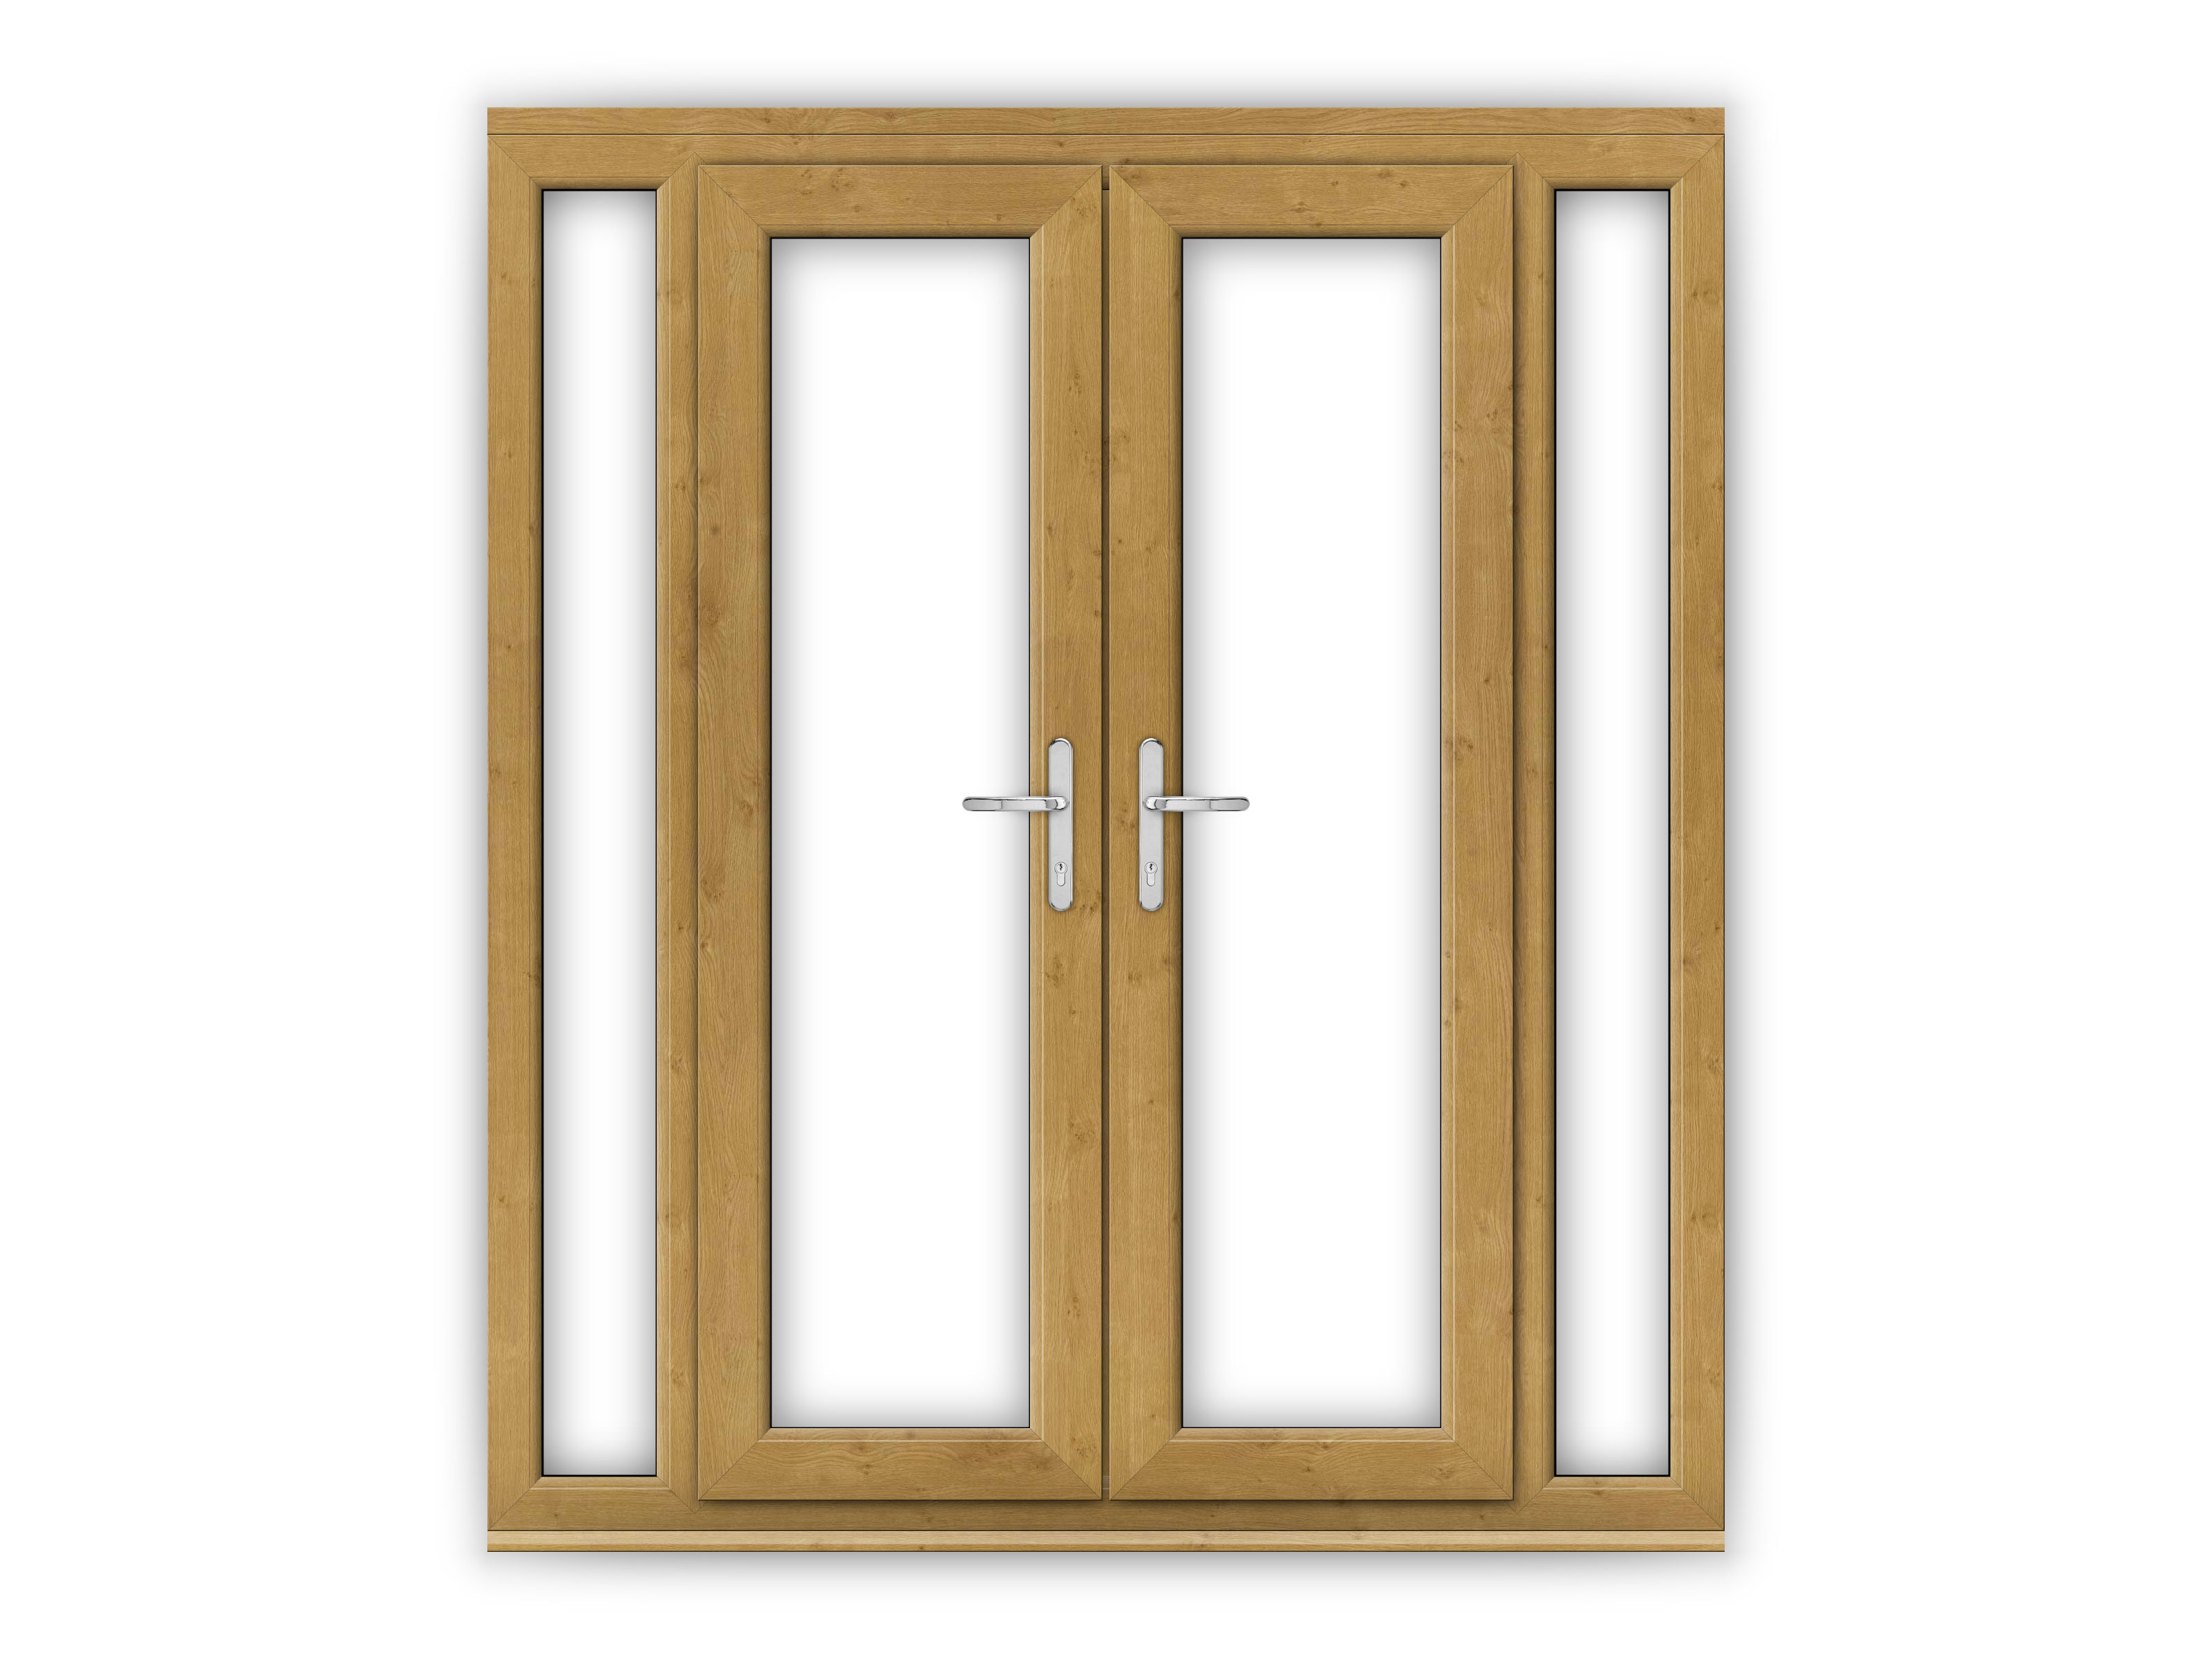 4ft irish oak upvc french doors with narrow side panels for Narrow french patio doors